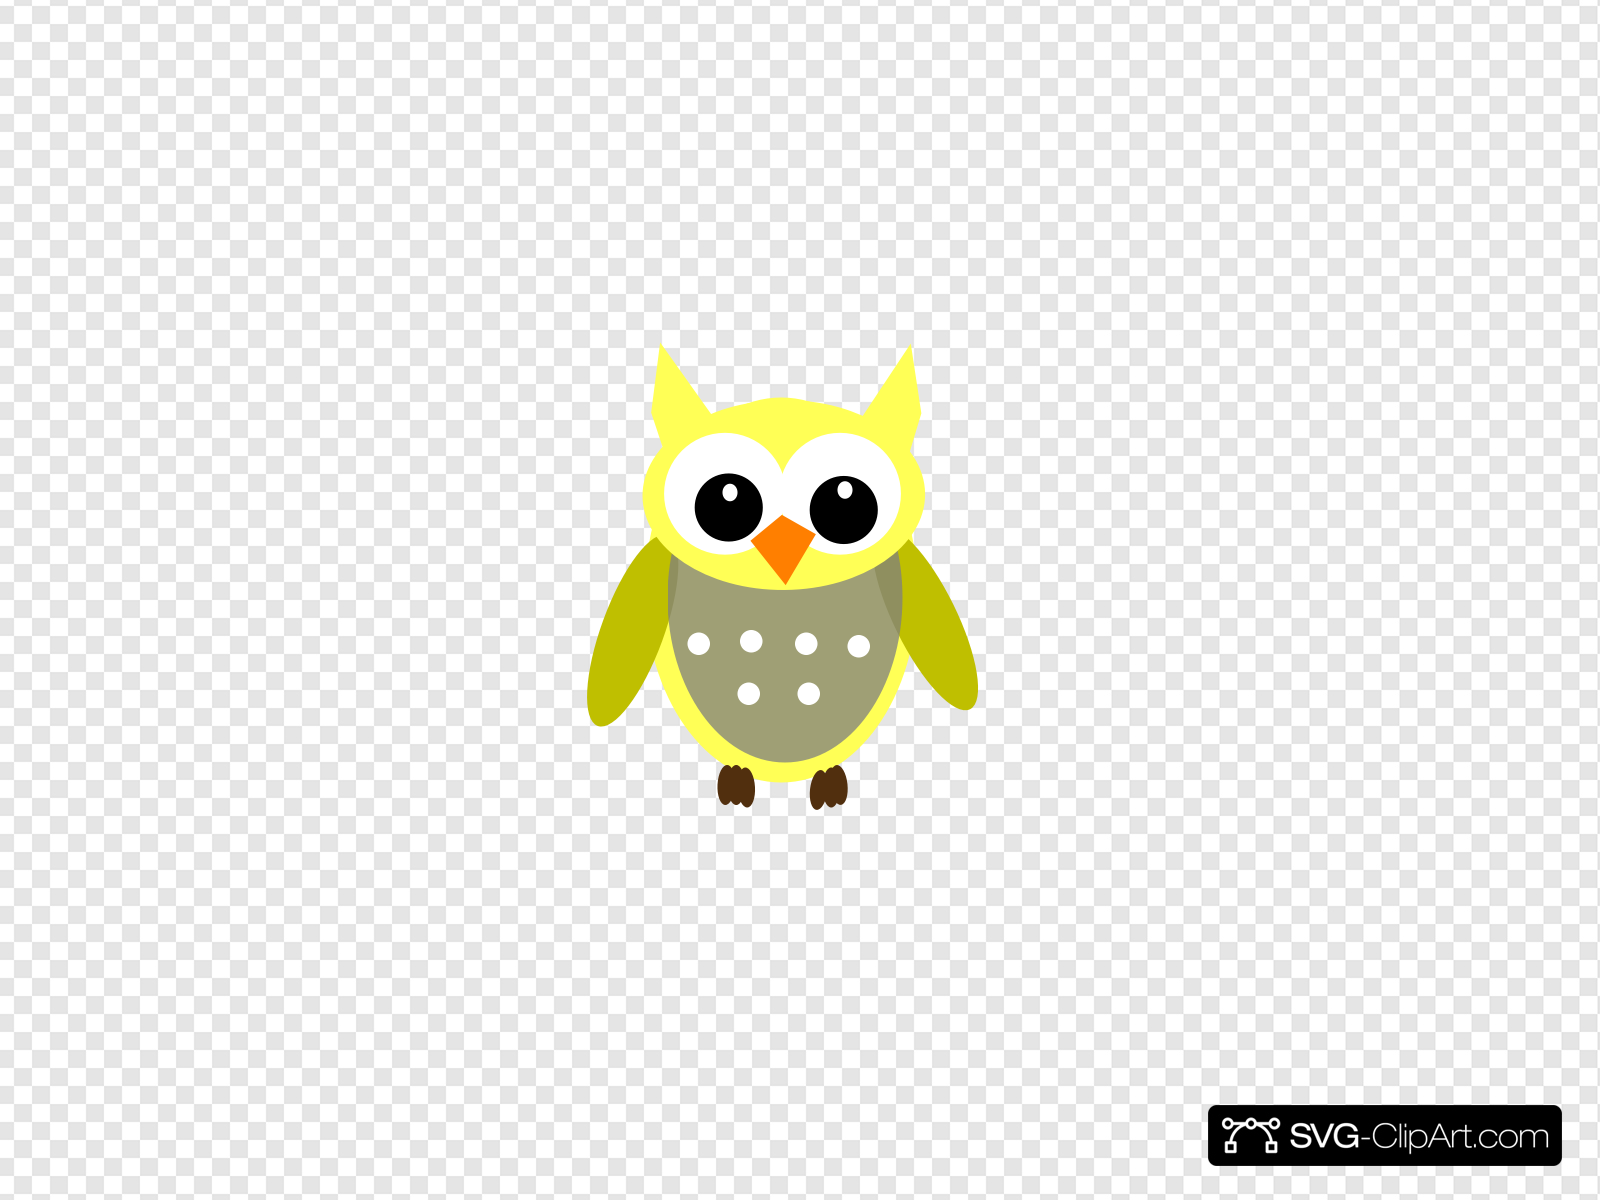 Cute Yellow Gray Owl Clip art, Icon and SVG.